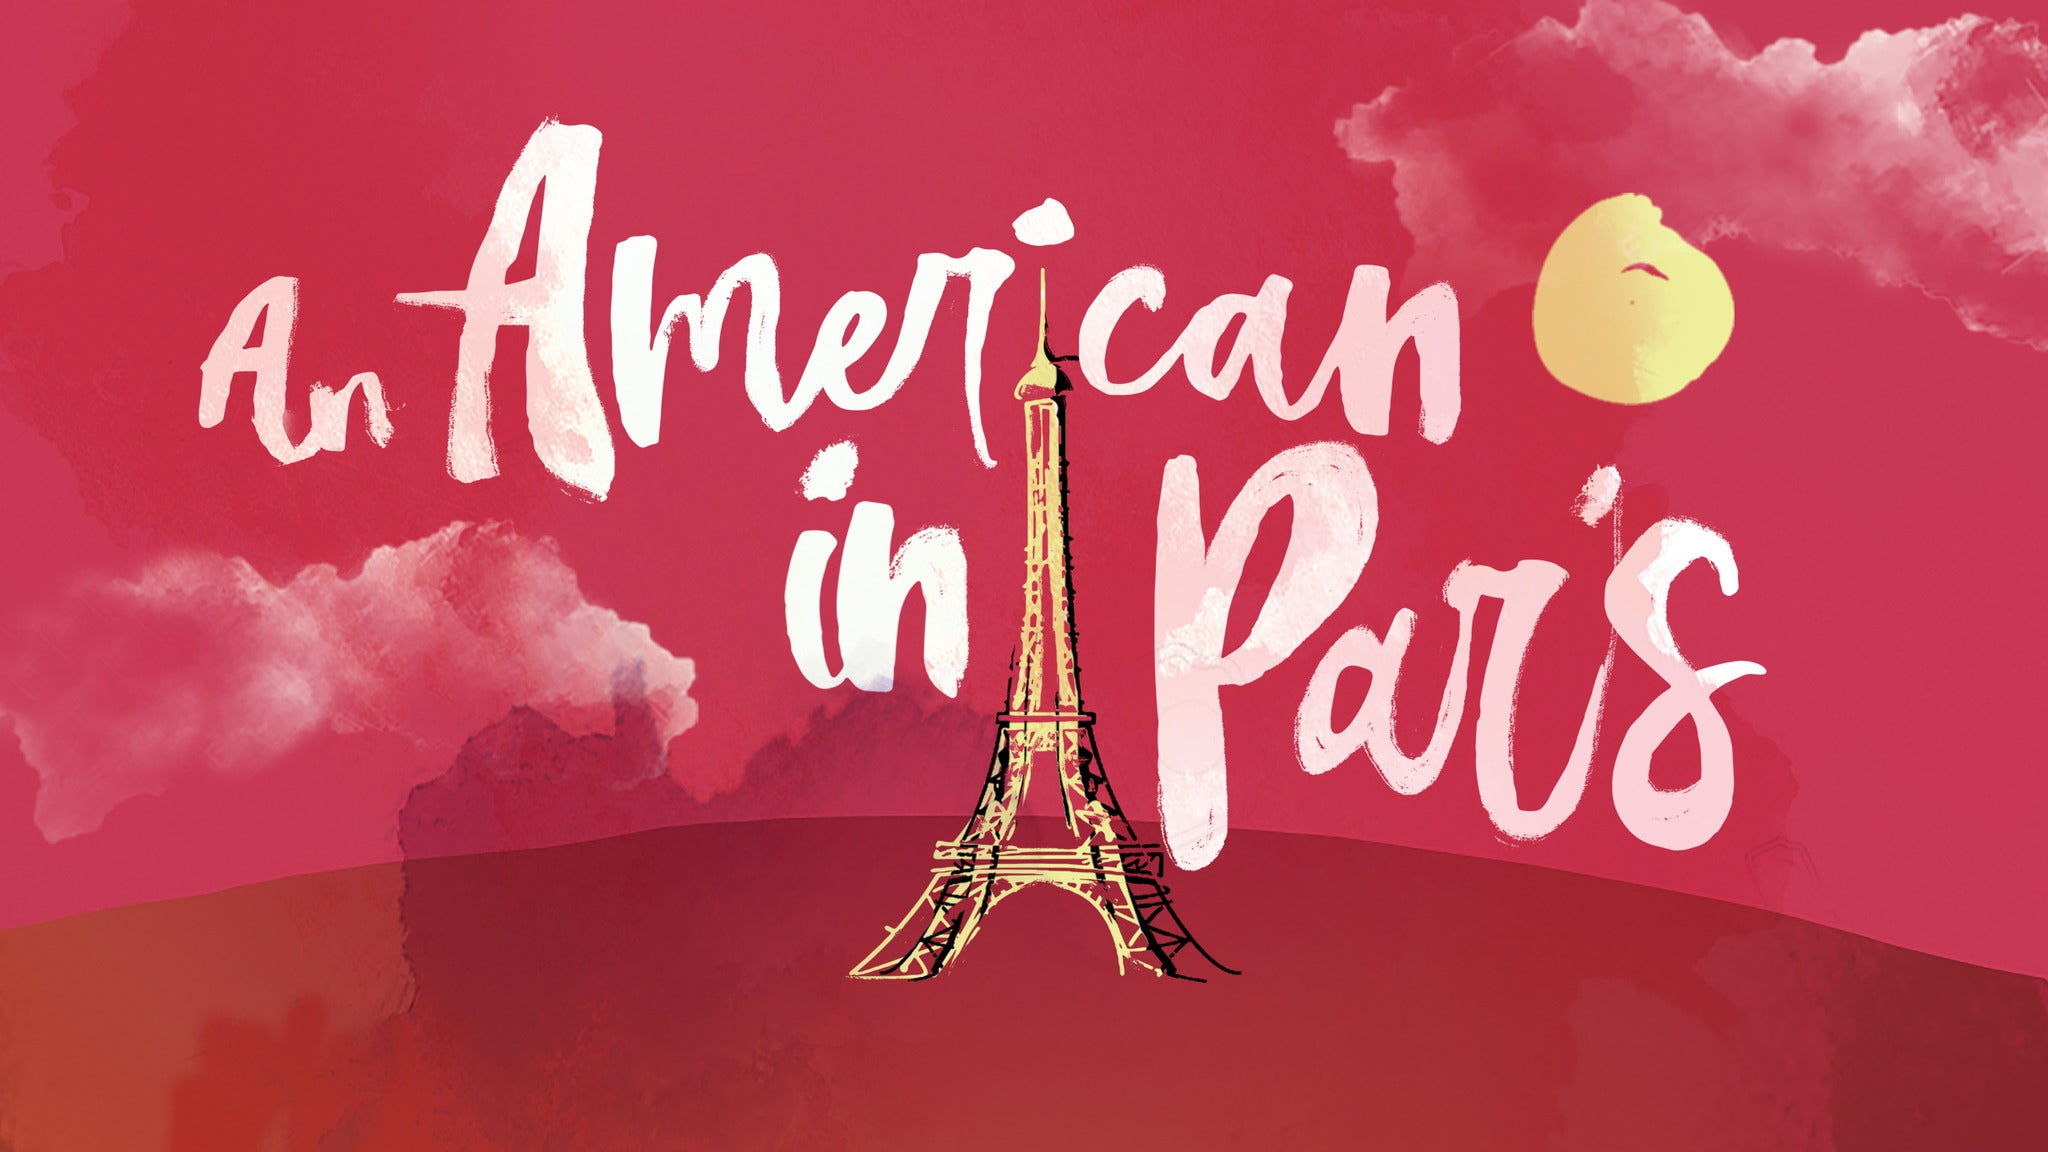 Drury Lane Theatre presents: An American in Paris